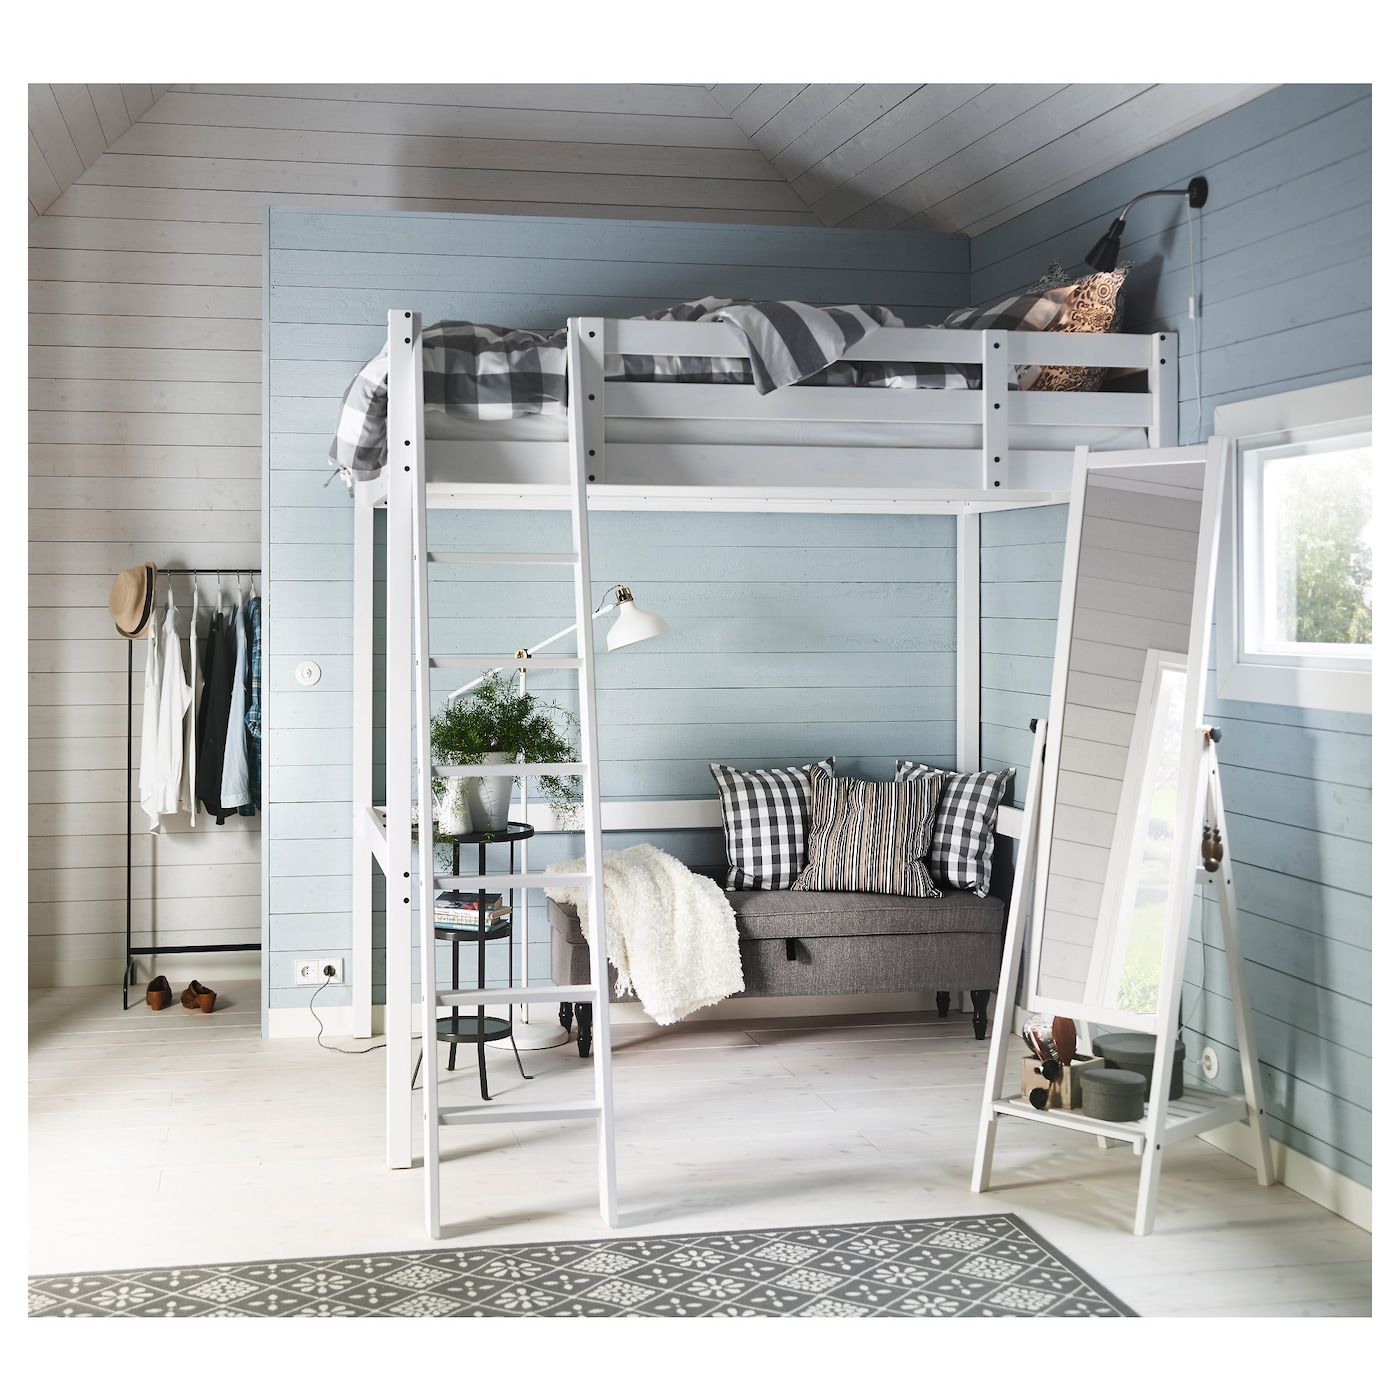 IKEA STORÅ Loft Bed Frame You Can Use The Space Under The Bed For Storage, Part 74